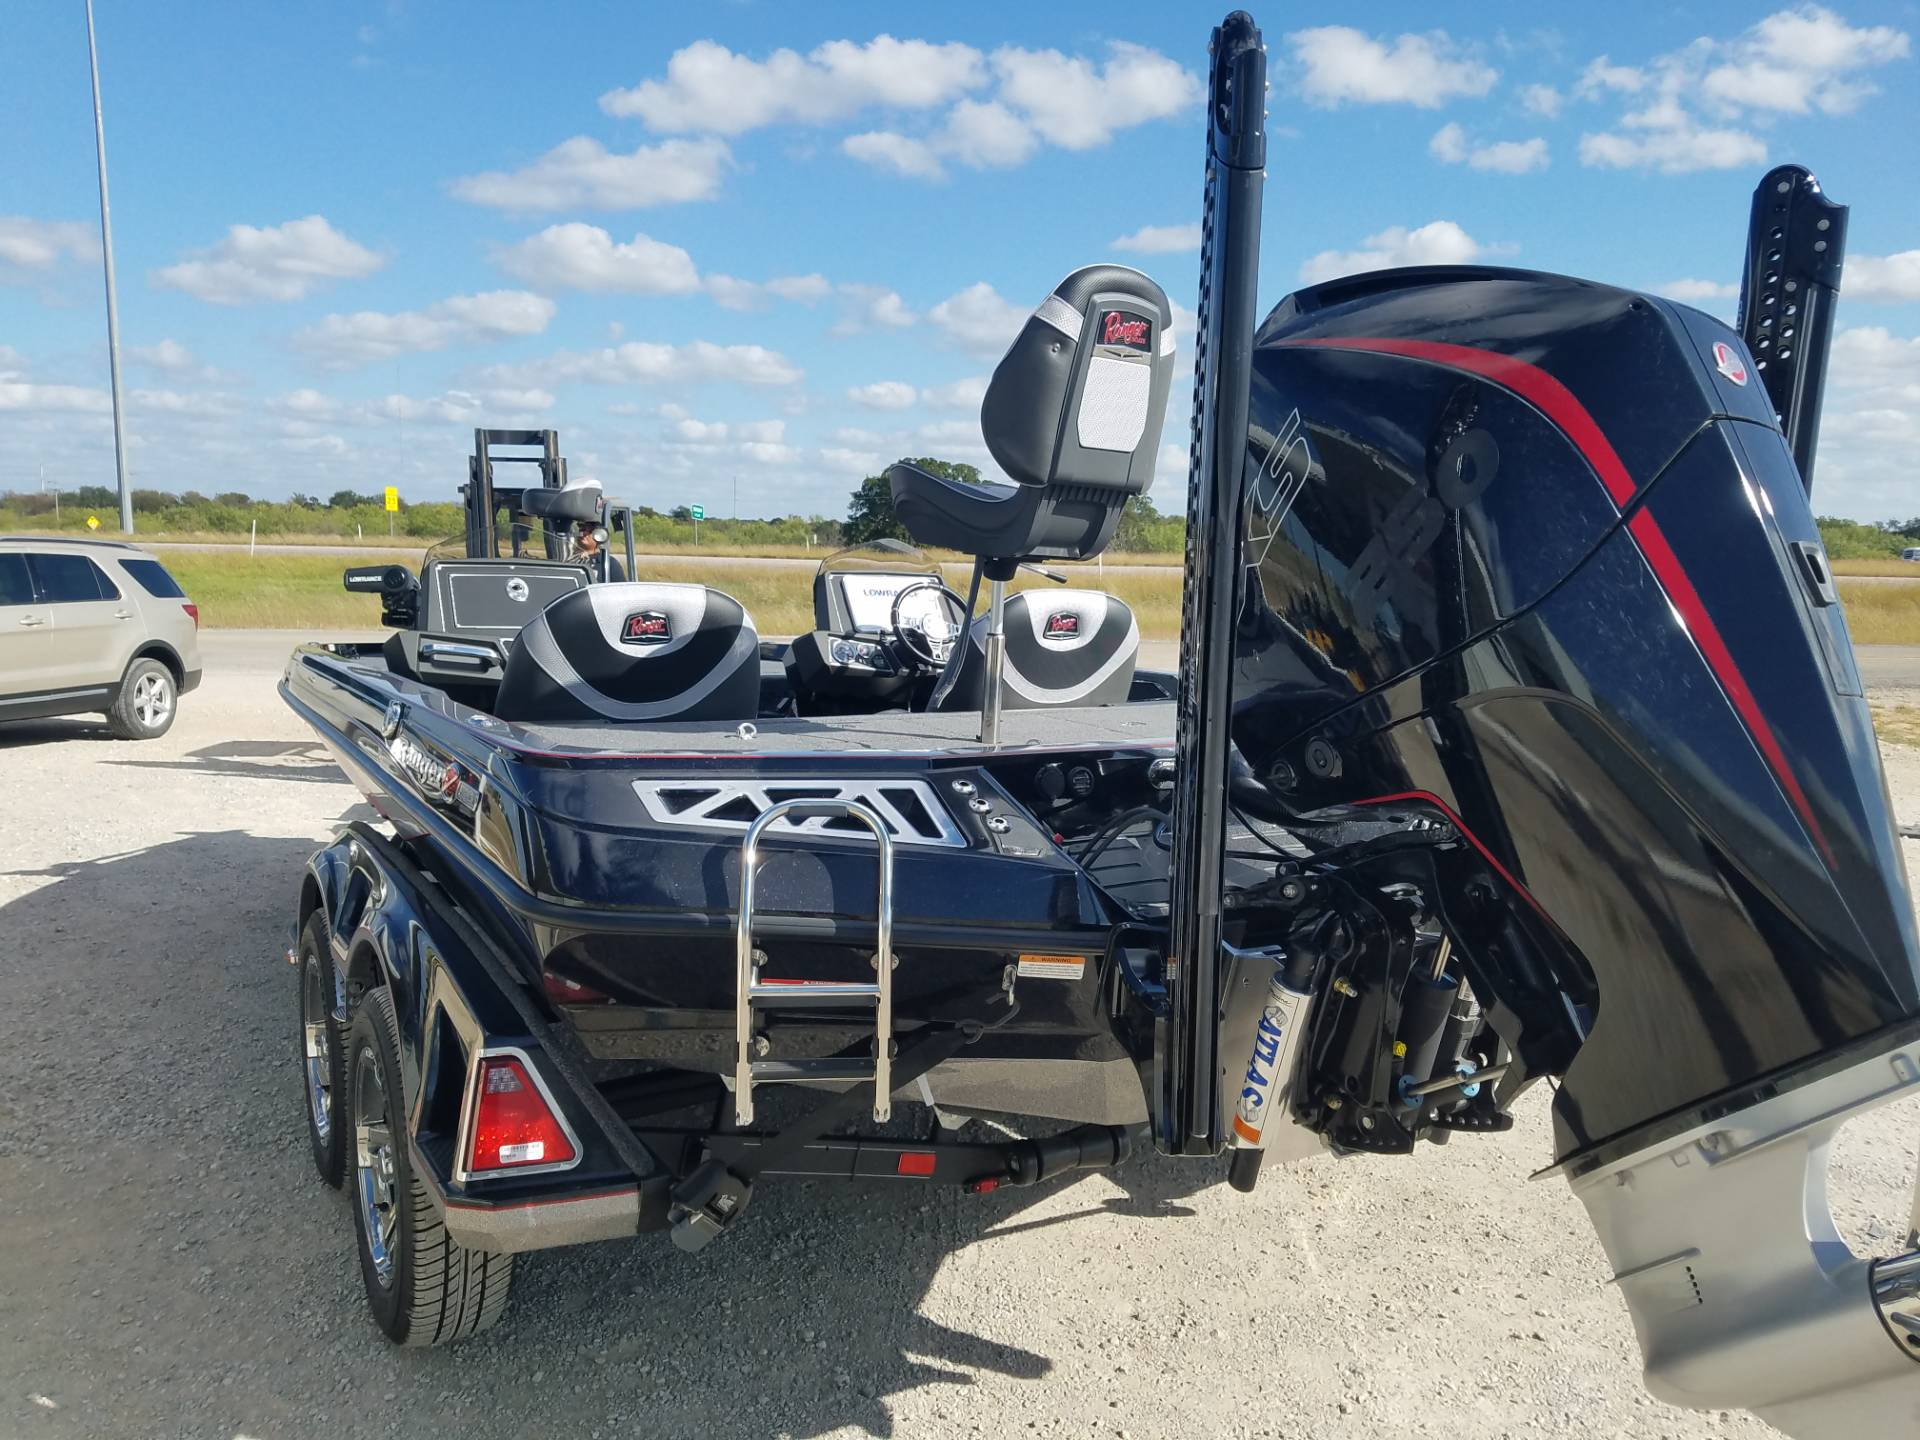 2021 Ranger Z520L Touring Package w/ Dual Pro Charger in Eastland, Texas - Photo 3